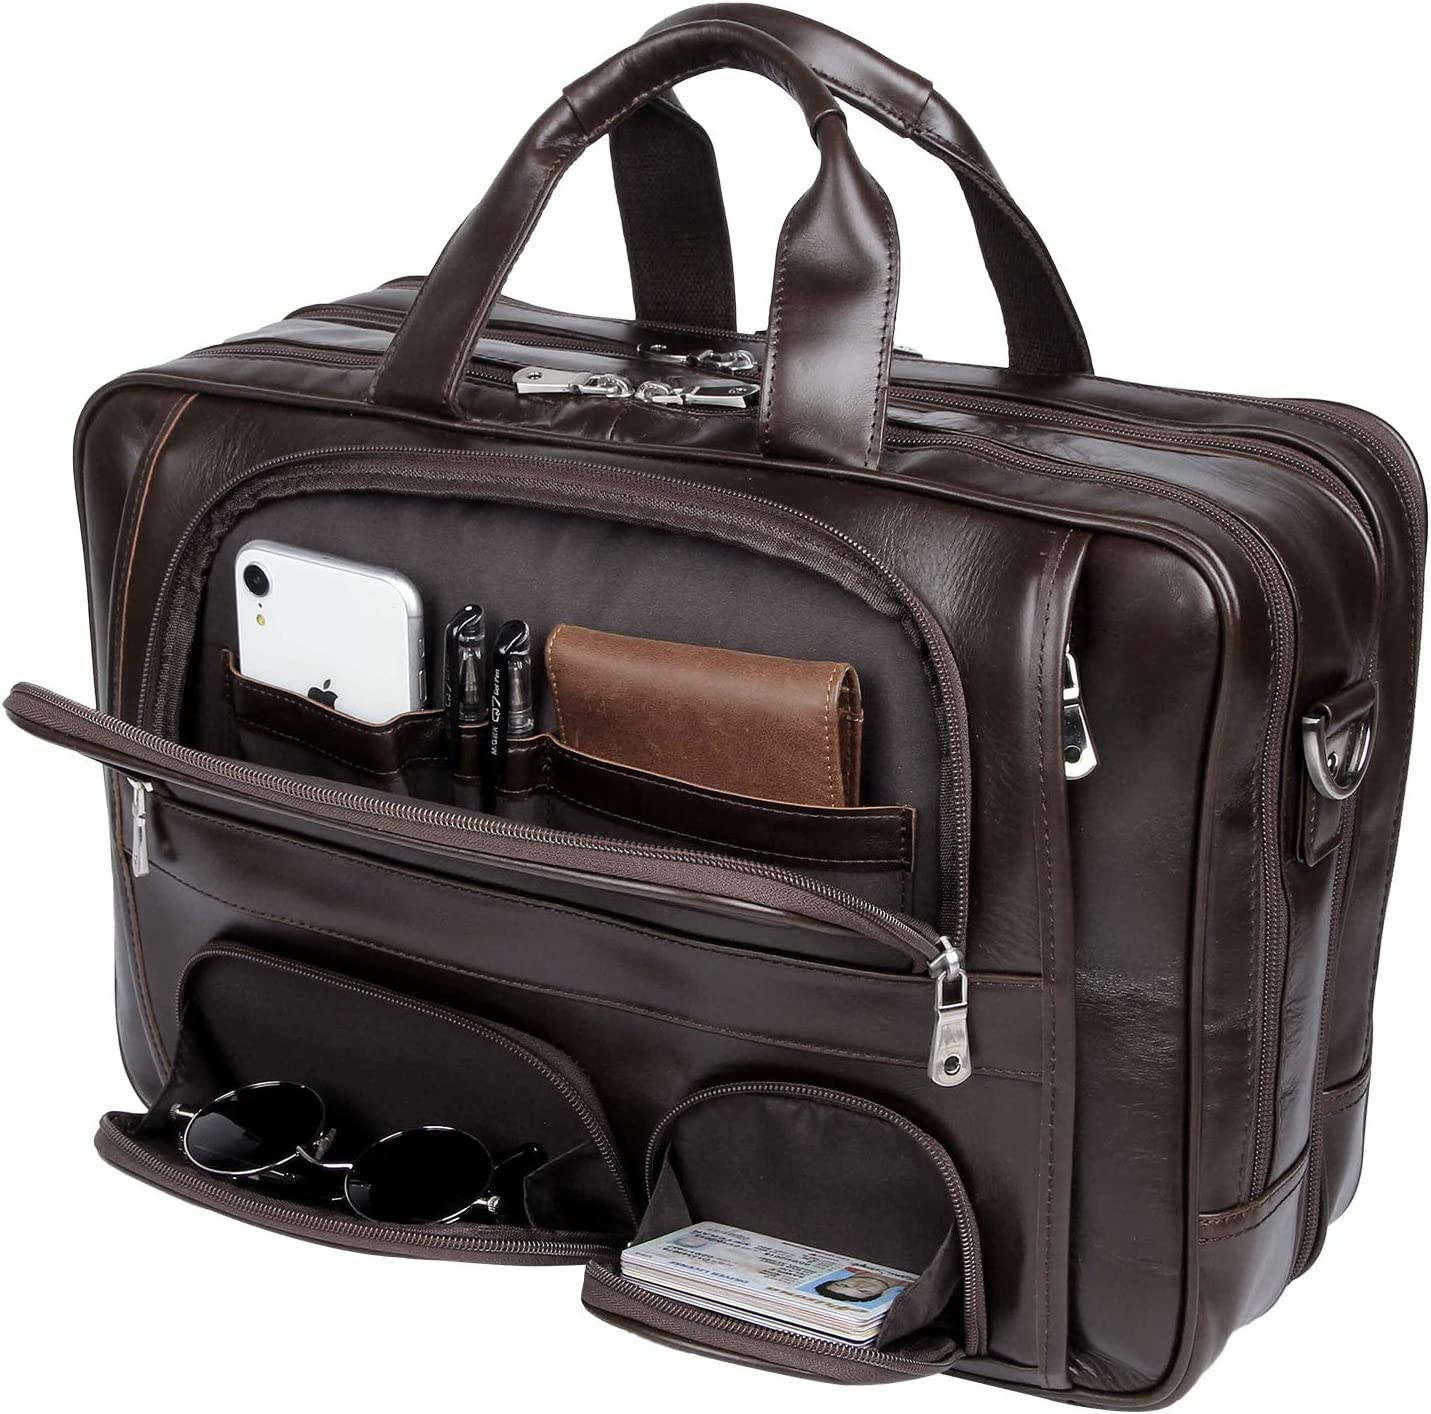 Texbo Napa Leather Briefcase for Men Fits 17'' Laptop Large Business Messenger Bag with YKK Zippers